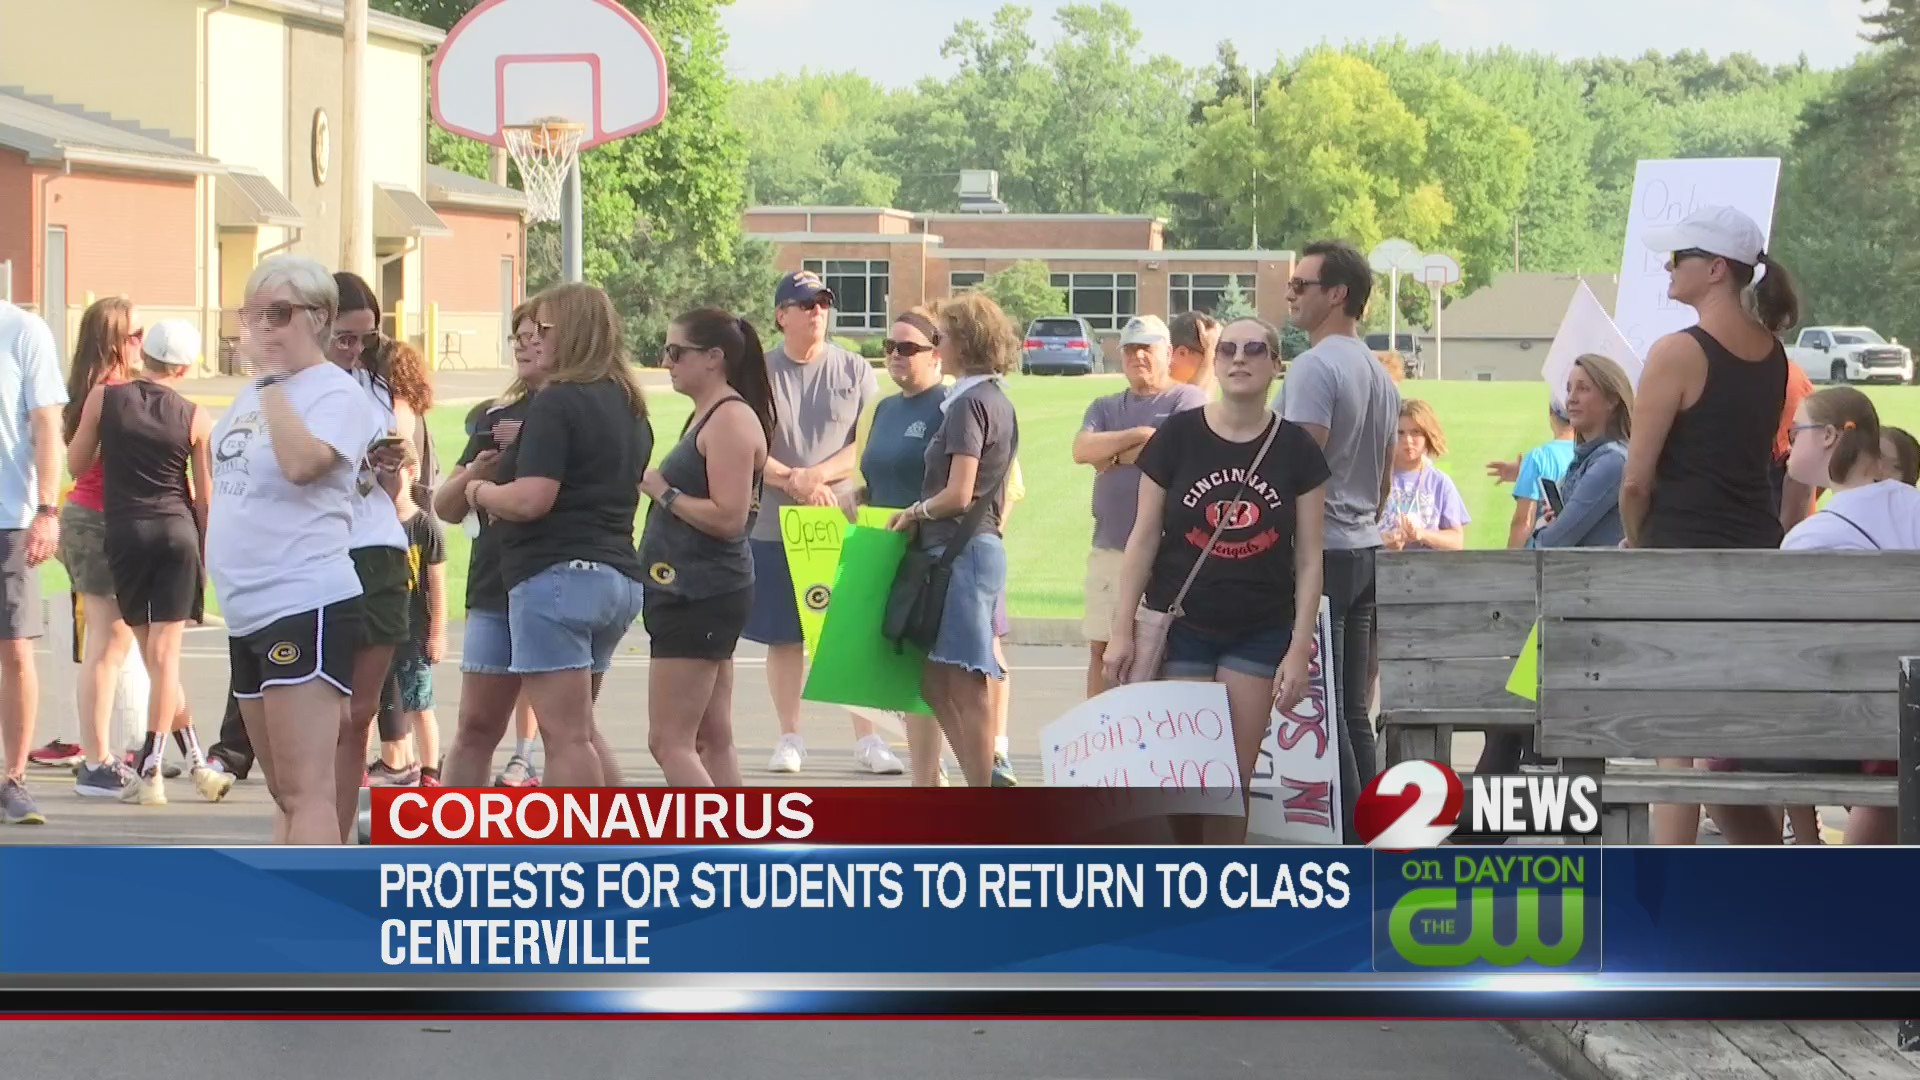 Protest for students in Centerville